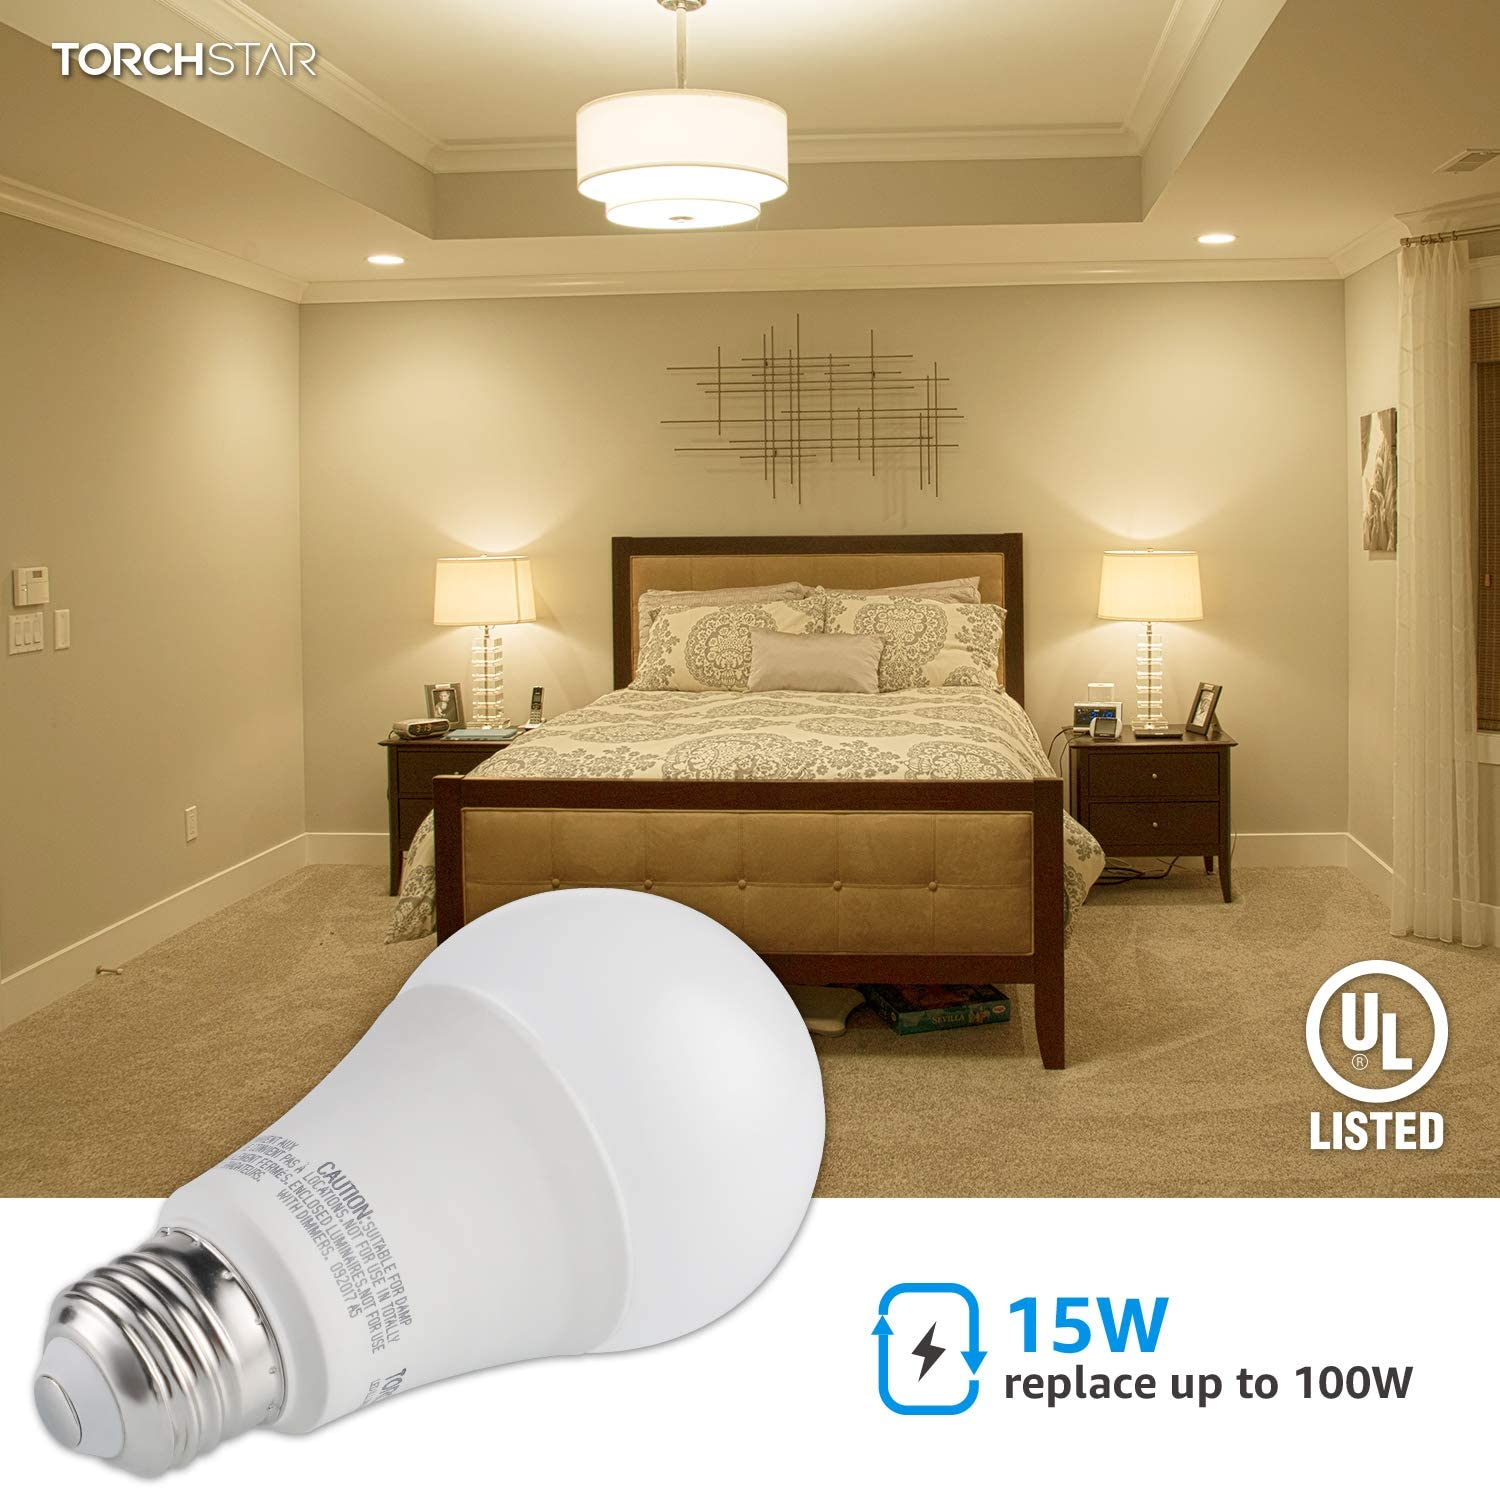 1600 Lumens Ultra-Bright 5000K Daylight Standard E26 Medium Base Pack of 4 100W Equivalent LED A19 Light Bulb Damp Location Rated TORCHSTAR Garage Door Opener LED Bulb UL-Listed Non-Dimmable